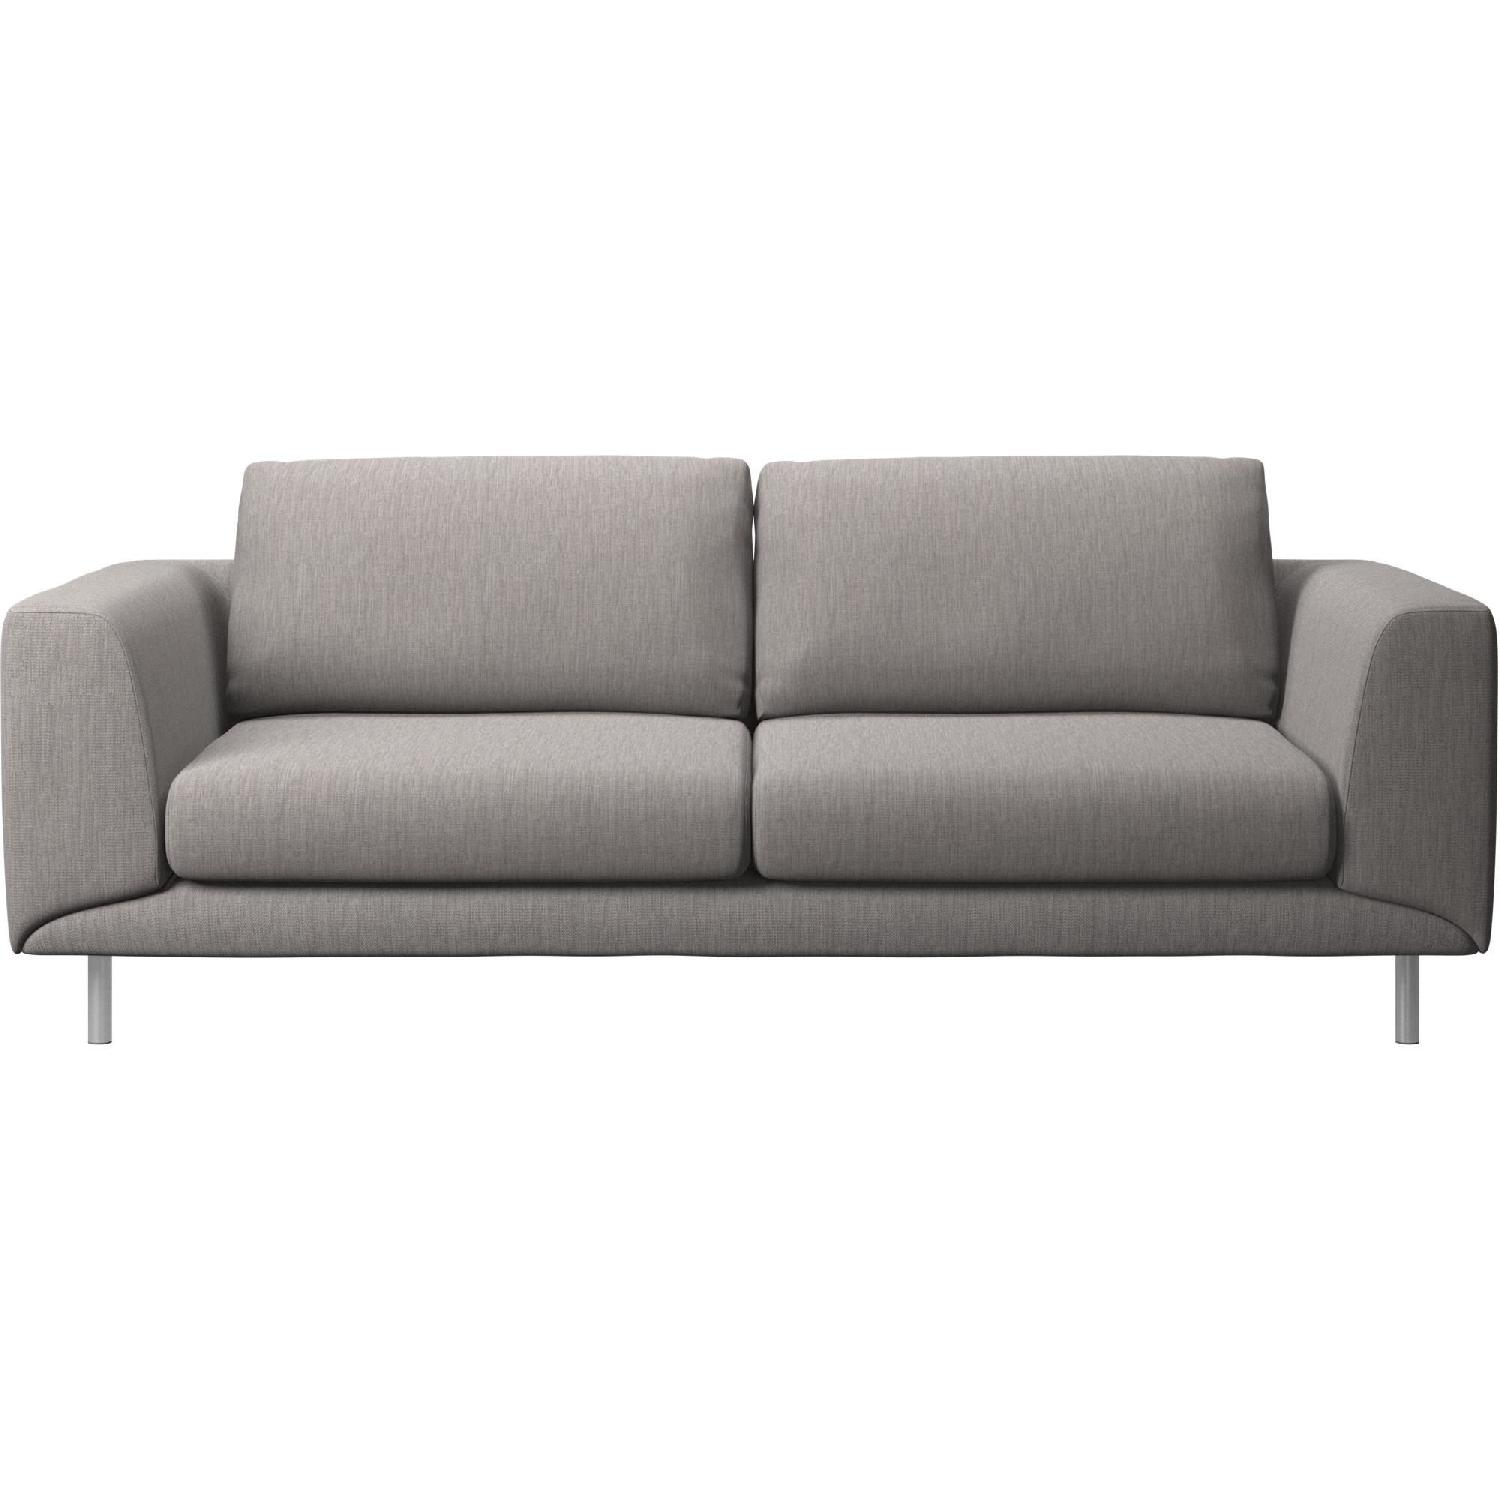 BoConcept Fargo 2.5 Seater Sofa In Speckled Grey/Steel ...